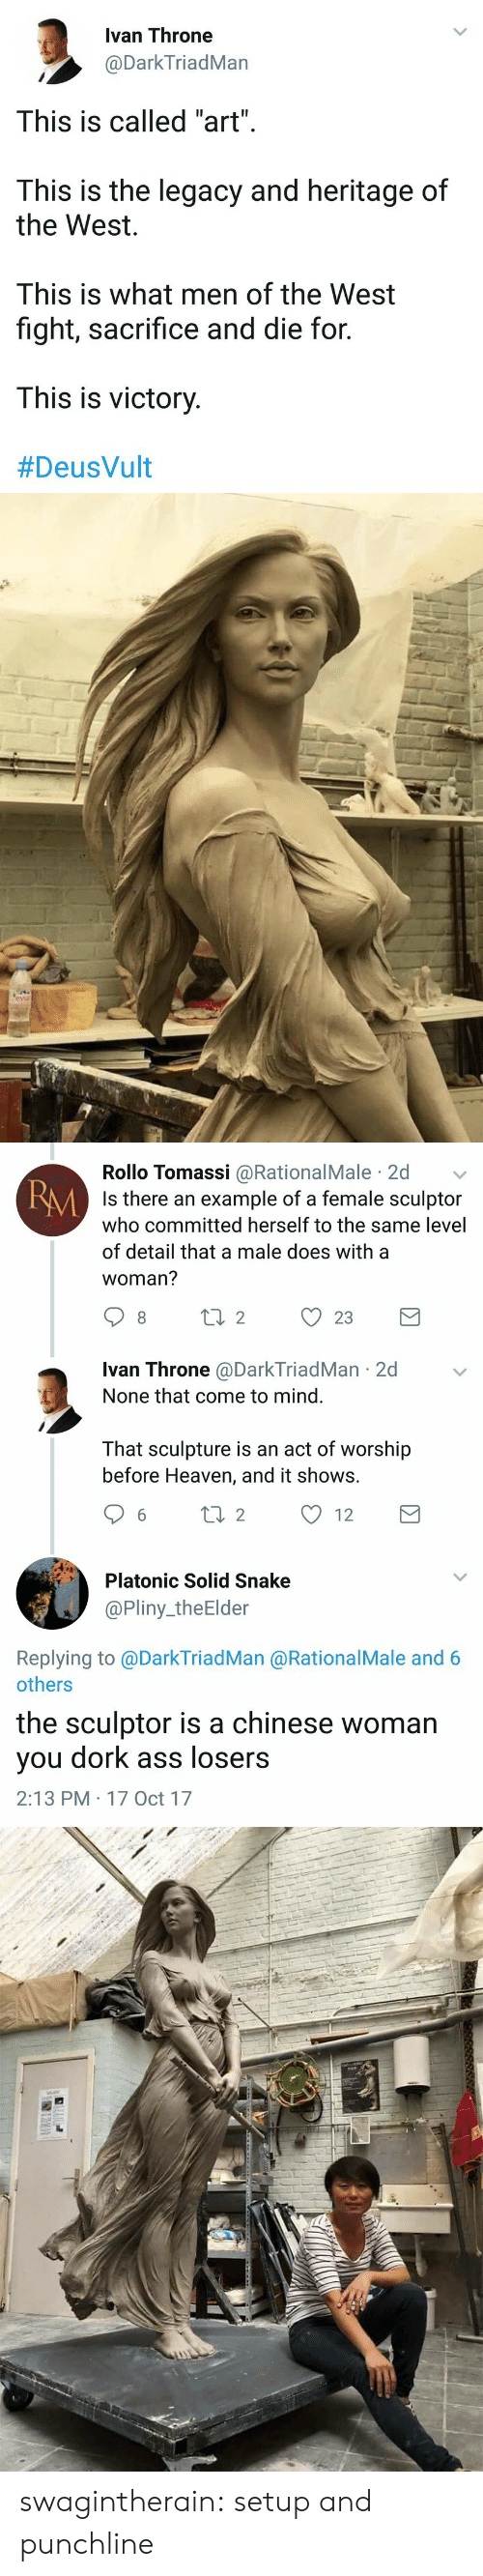 """Ass, Heaven, and Tumblr: Ivan Throne  @DarkTriadMan  This is called """"art"""".  This is the legacy and heritage of  the West  This is what men of the West  fight, sacrifice and die for  This is victory  #DeusVult   Rollo Tomassi @RationalMale 2d  Is there an example of a female sculptor  who committed herself to the same level  of detail that a male does with a  woman?  RM  Ivan Throne @DarkTriadMan 2d  None that come to mind.  That sculpture is an act of worship  before Heaven, and it shows.  6 ti 2 12  Platonic Solid Snake  @Pliny_theElder  Replying to @DarkTriadMan @RationalMale and 6  others  the sculptor is a chinese woman  you dork ass losers  2:13 PM 17 Oct 17 swagintherain:   setup and  punchline"""